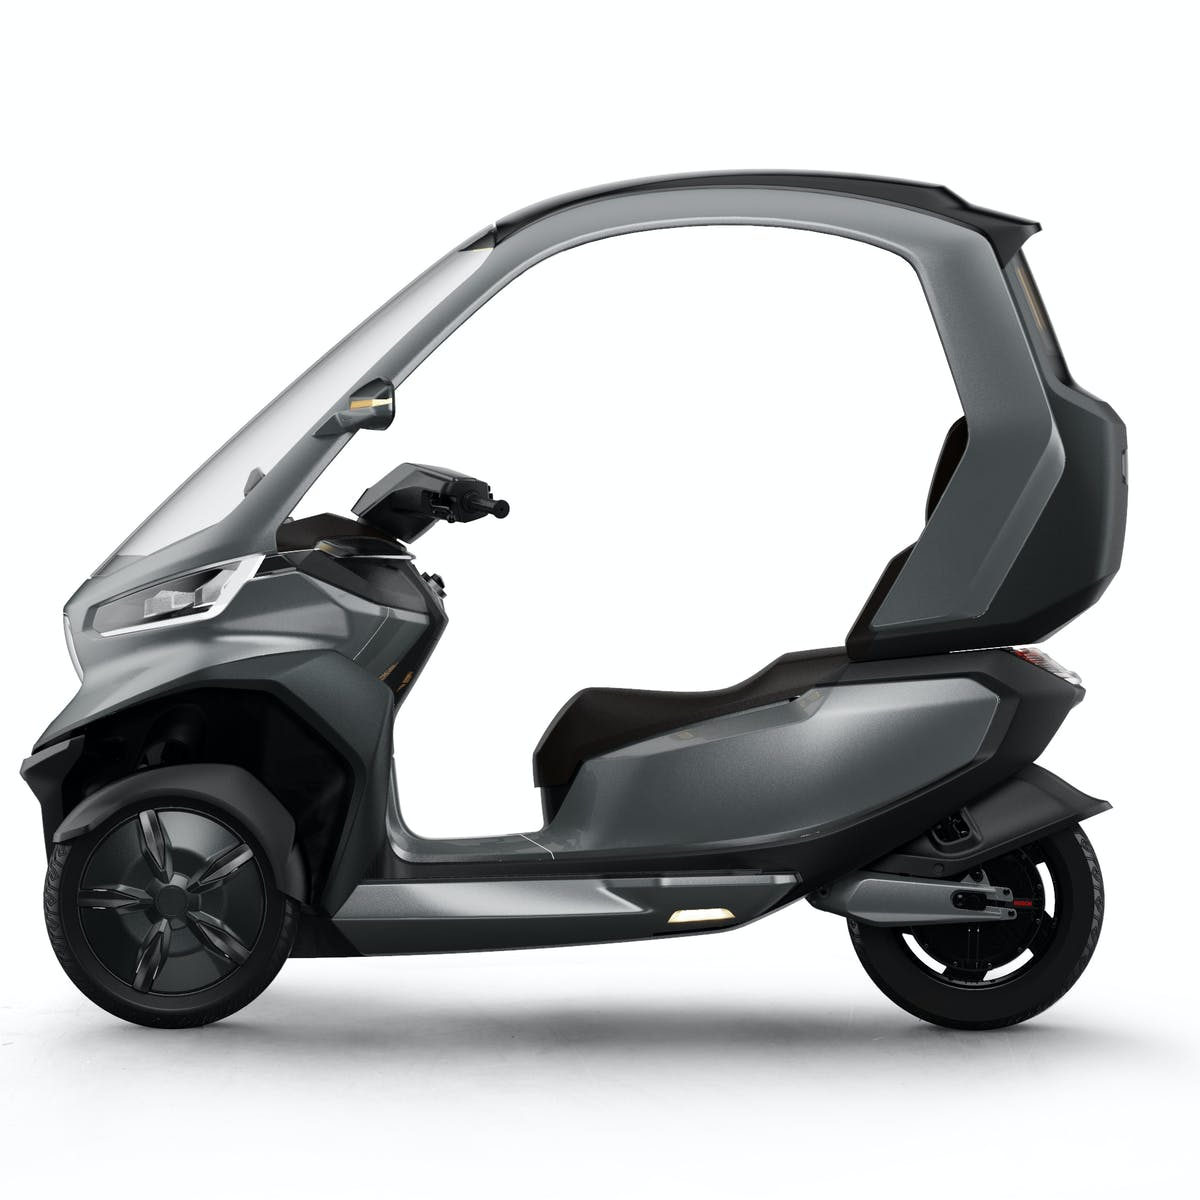 Niu launches self-balancing electric moped ahead of major U.S. debut